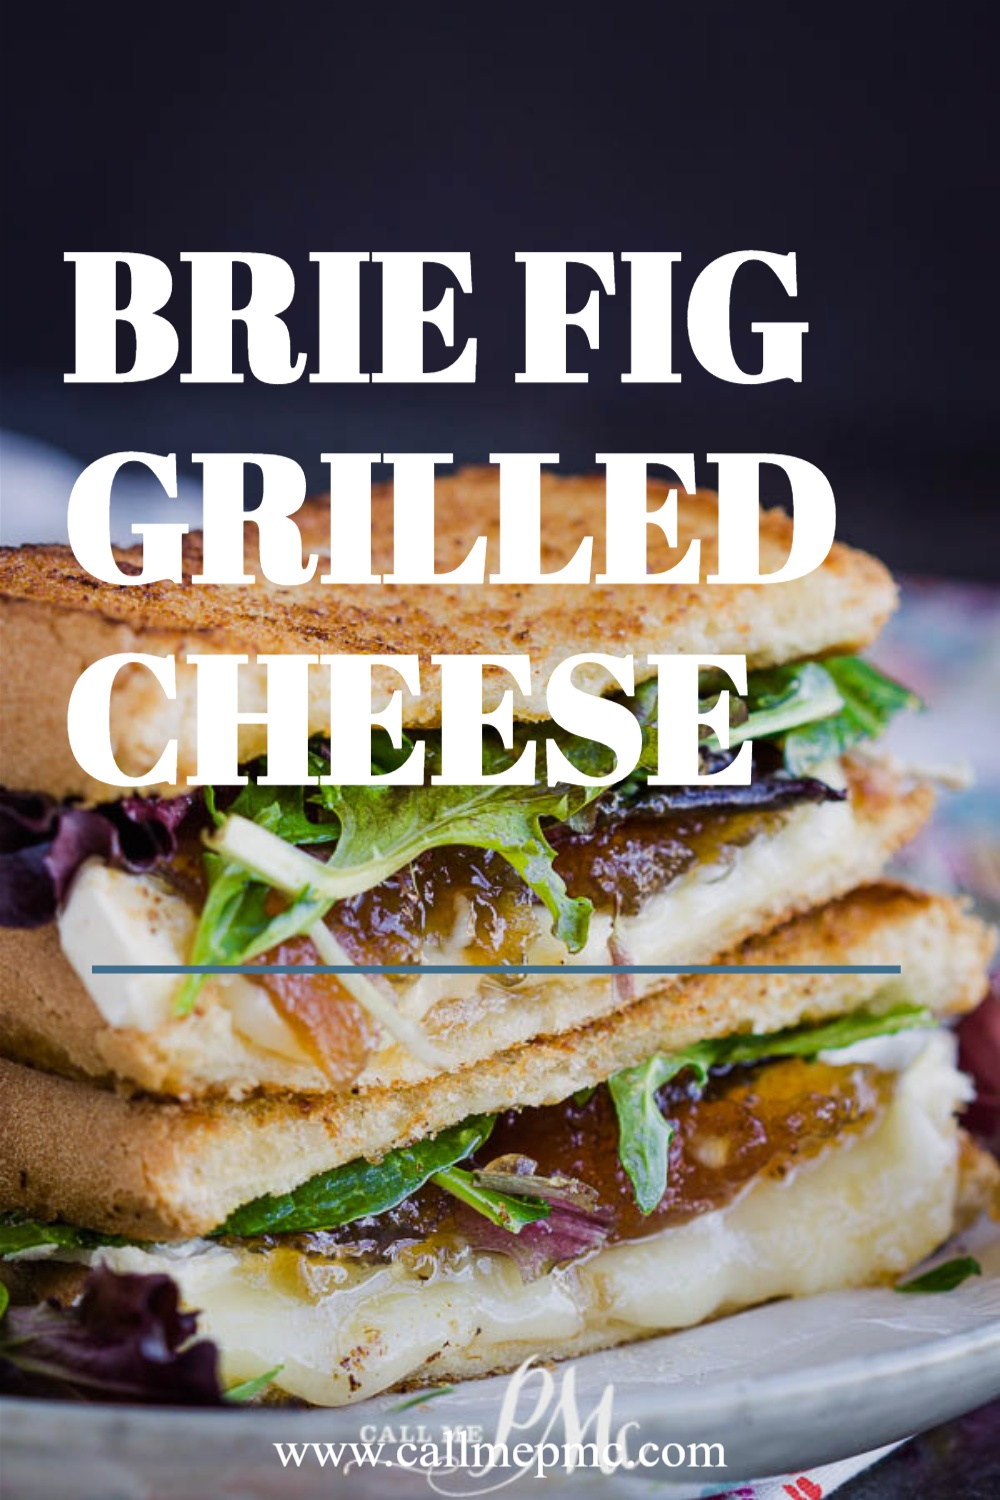 Brie Fig Grilled Cheese - Gourmet grilled cheese sandwich oozing with melted brie cheese and fig preserve nestled between buttery bread! It's out-of-this-world good!